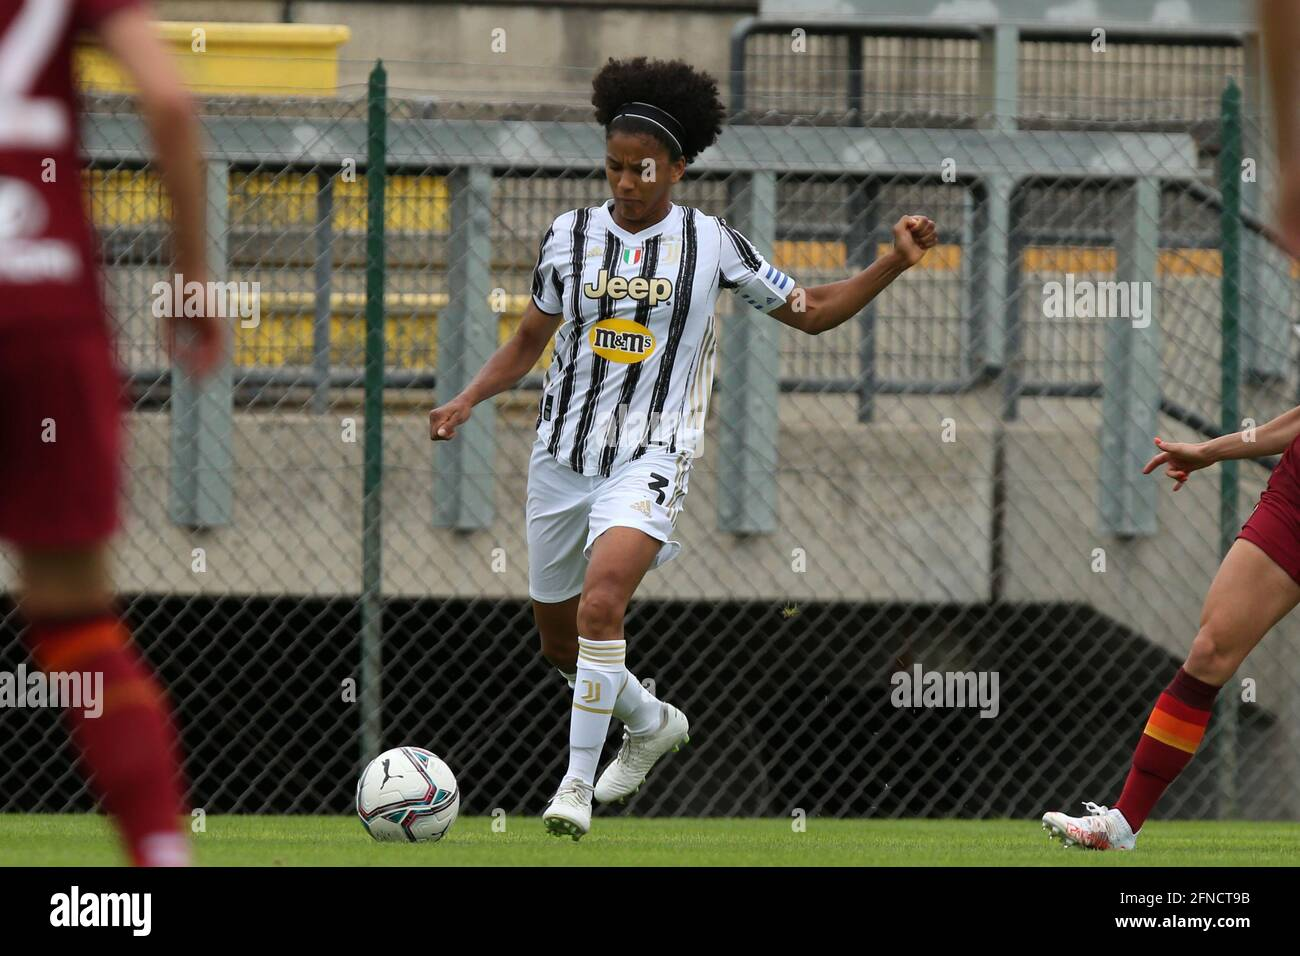 Rome, Italy. 16th May, 2021. Sara Gama (Juventus) during the Serie A TIMvision match between AS Roma and Juventus Women at Stadio Tre Fontane in Rome, Italy, on May 6th 2021 (Photo by Giuseppe Fama/Pacific Press) Credit: Pacific Press Media Production Corp./Alamy Live News Stock Photo